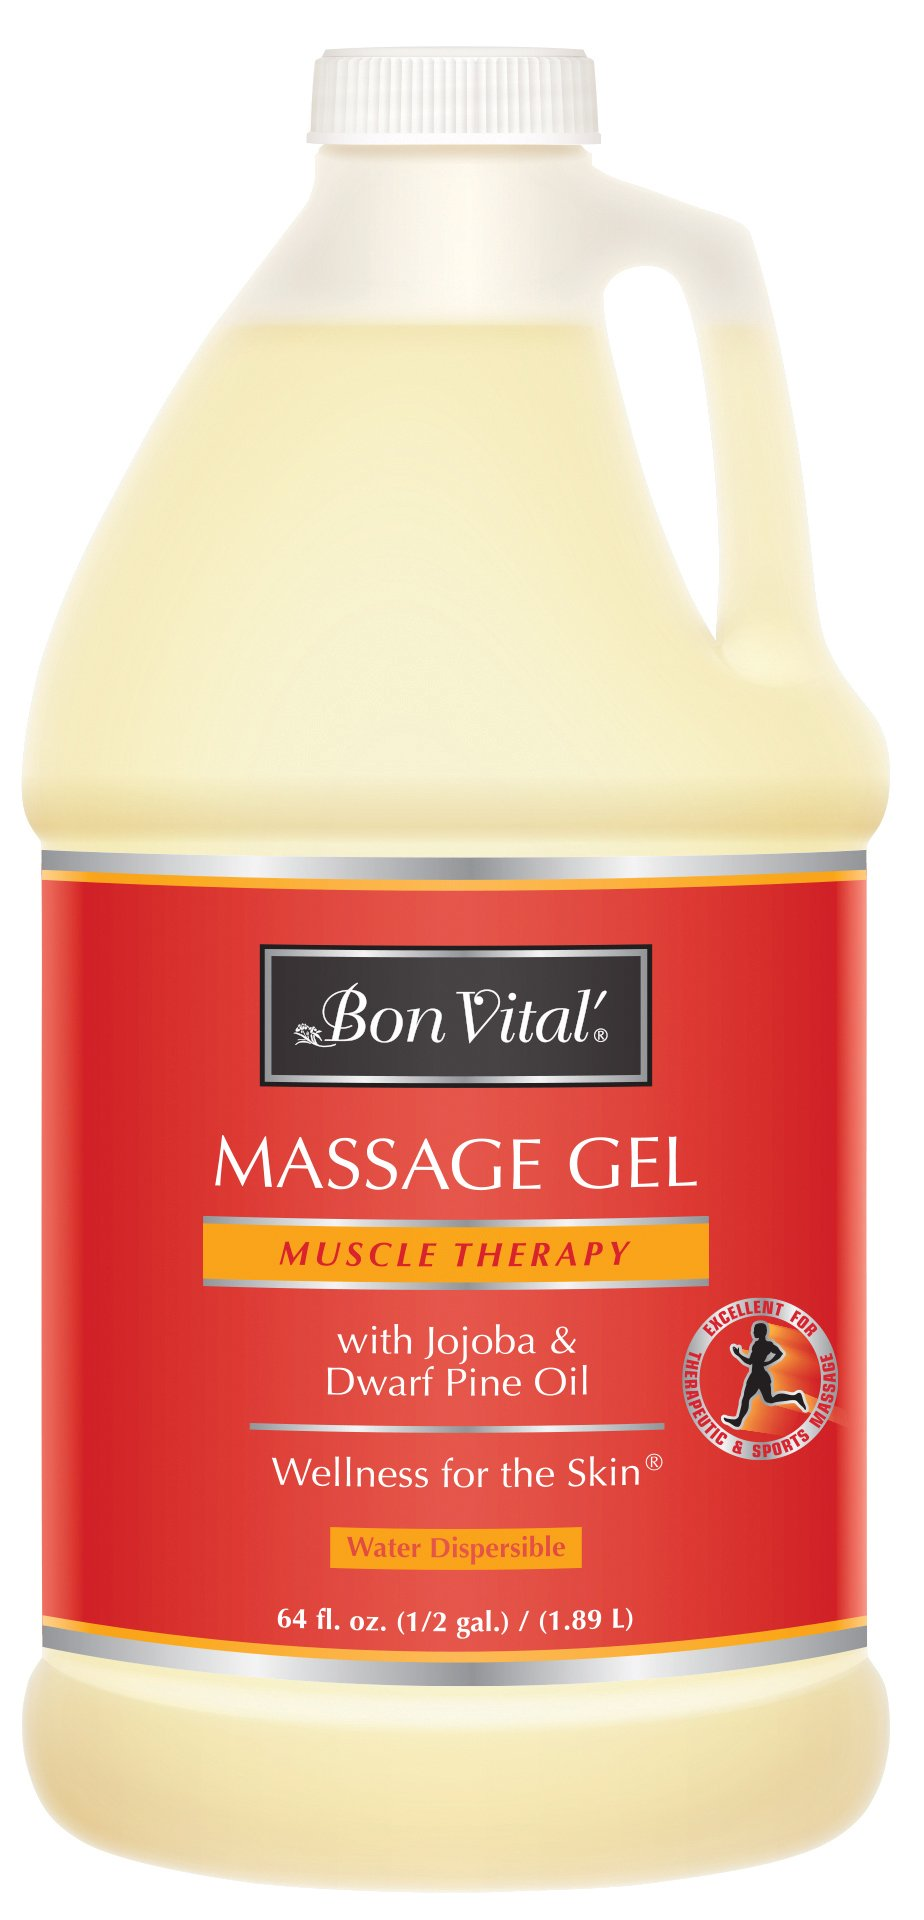 Bon Vital' Muscle Therapy Massage Gel Made with Dwarf Pine Oil & Essential Oils for a Relaxing Massage, Arthritis Pain Relief, and Sore Muscle Relief, Great for Use in Graston and IASTM, 1/2 Gallon